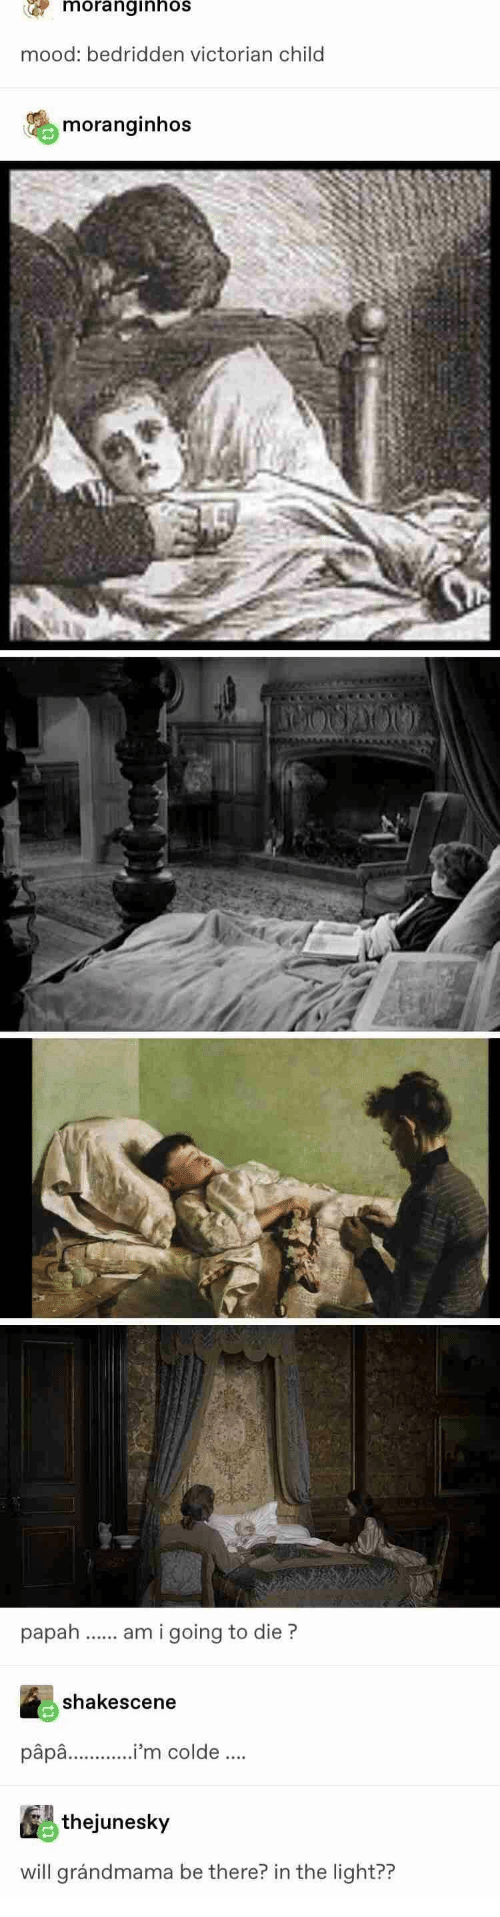 Victorian: moranginhos  mood: bedridden victorian child  moranginhos  am i going to die?  shakescene  pâpa..'m colde.  thejunesky  will grándmama be there? in the light??